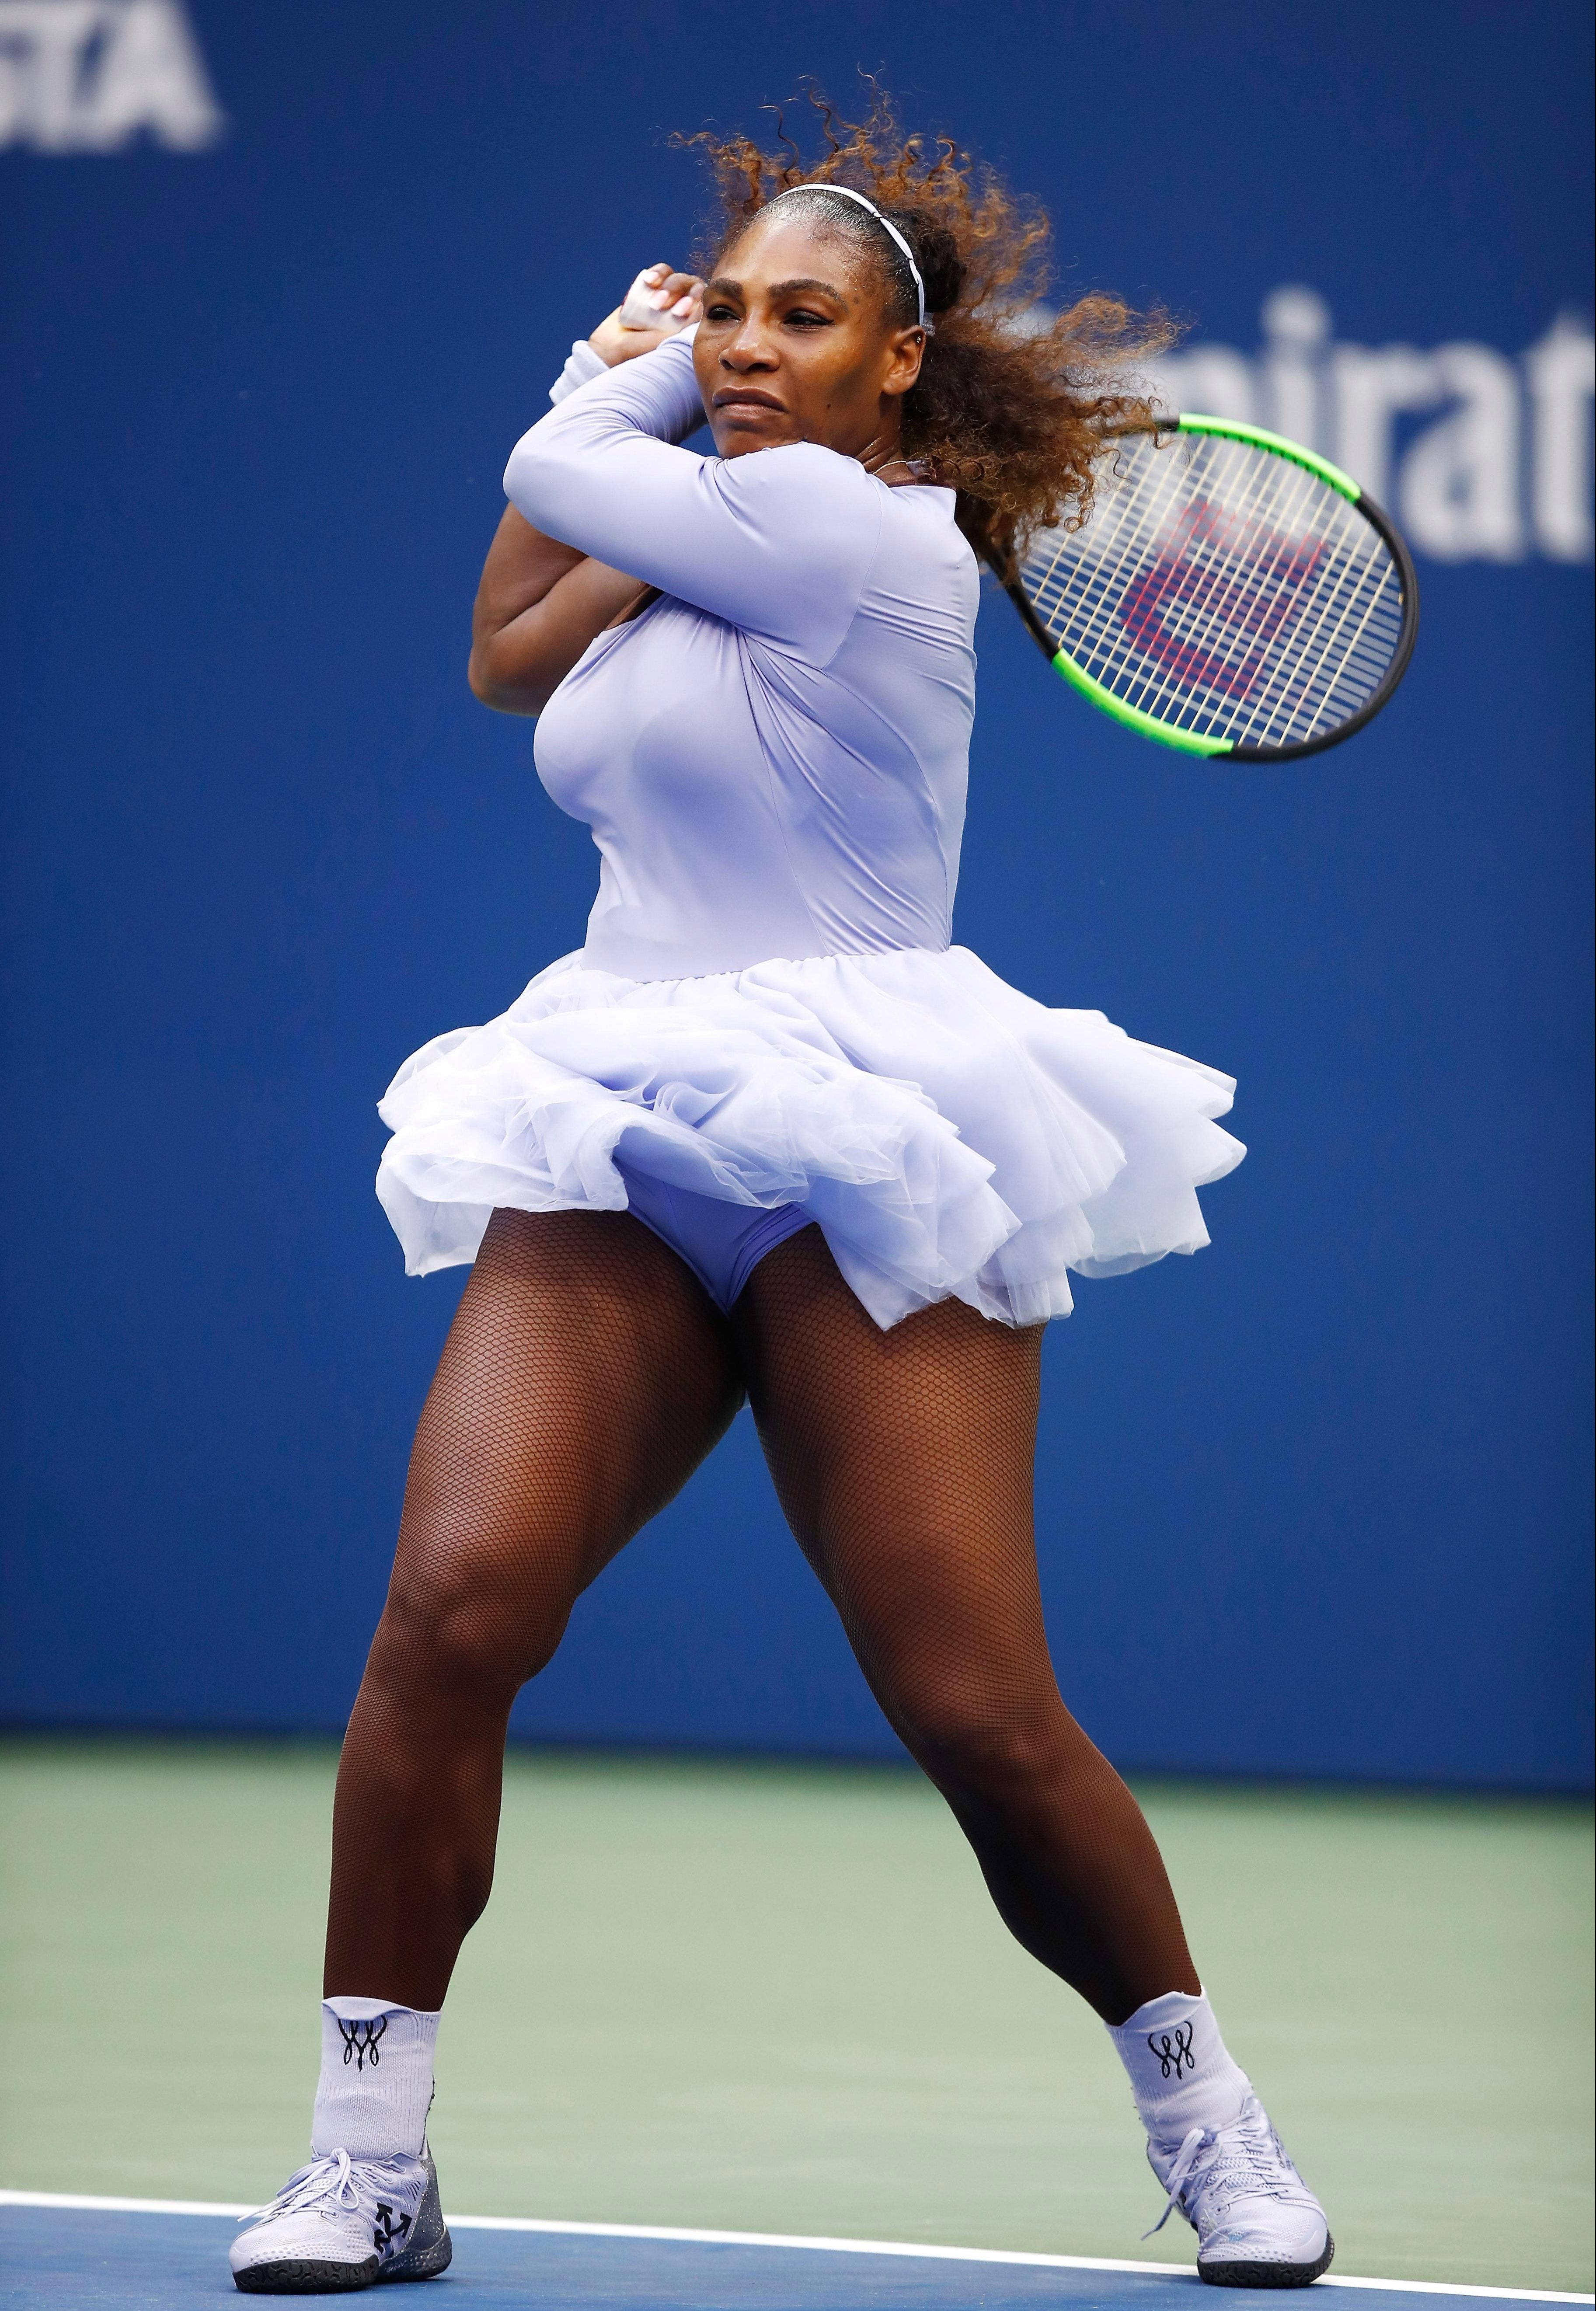 Williams started well and powered to a bagel first set and looked to be on course for a routine victory